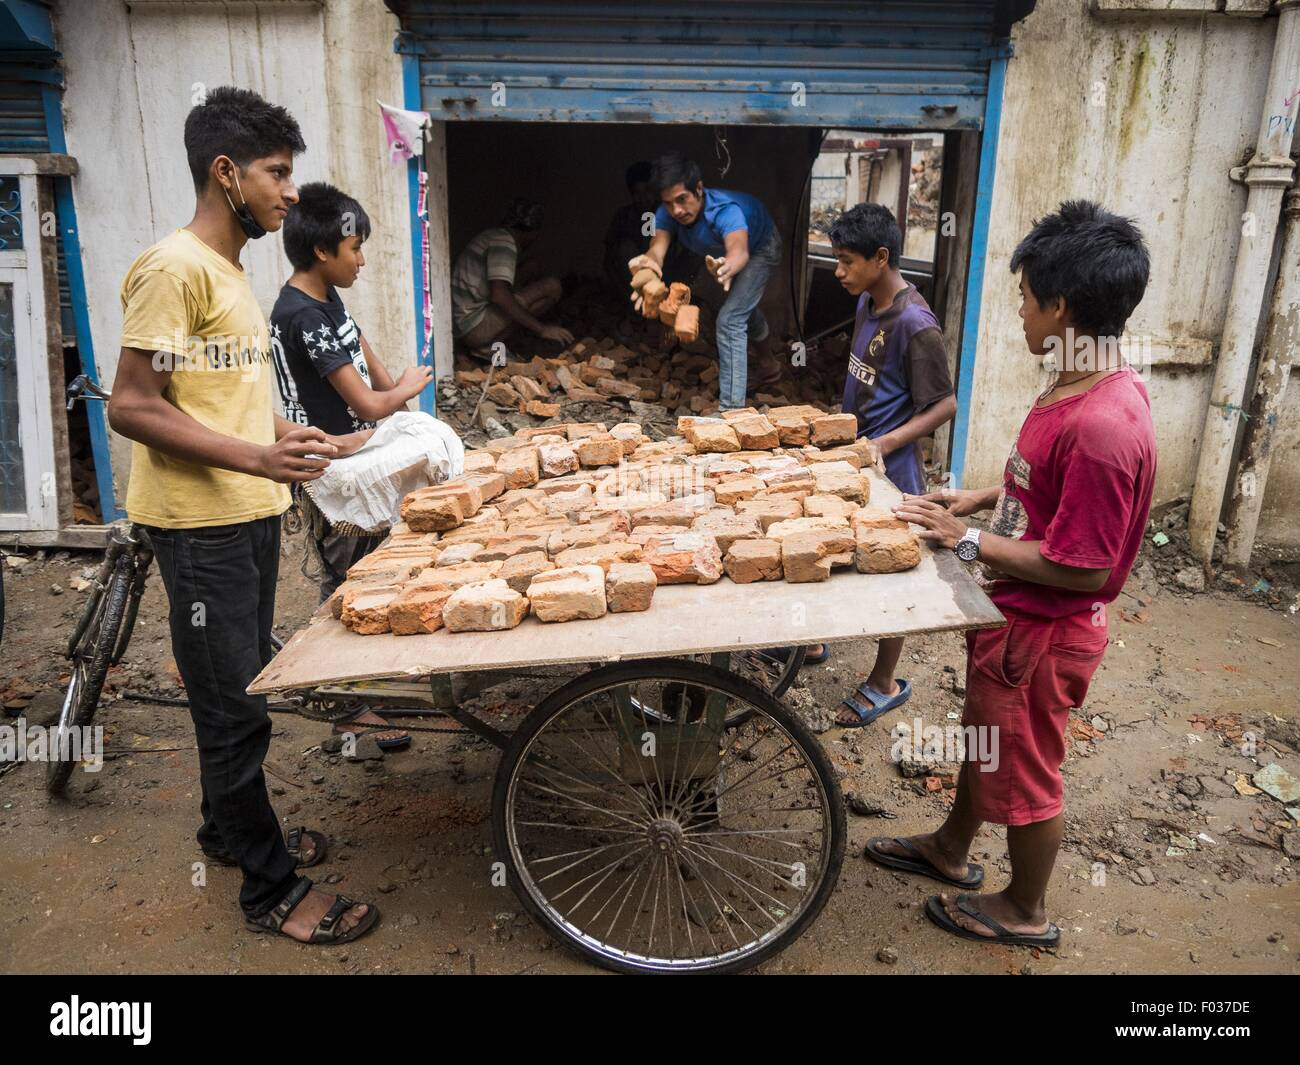 Kathmandu, Nepal. 6th Aug, 2015. Laborers recycle bricks from a house in Kathmandu that was destroyed in the Nepal - Stock Image